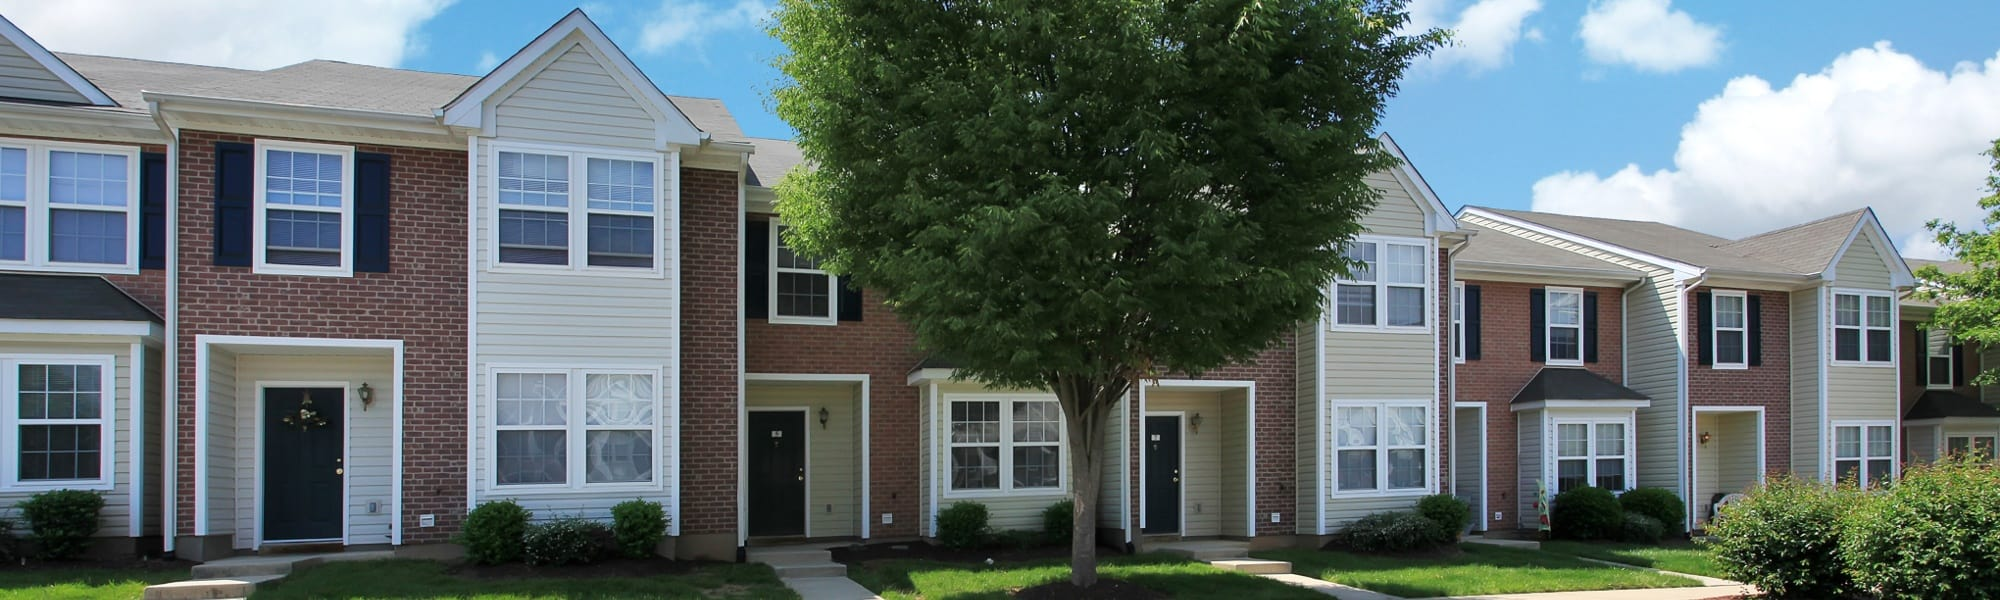 Schedule a tour to view our apartments in Fredericksburg, VA